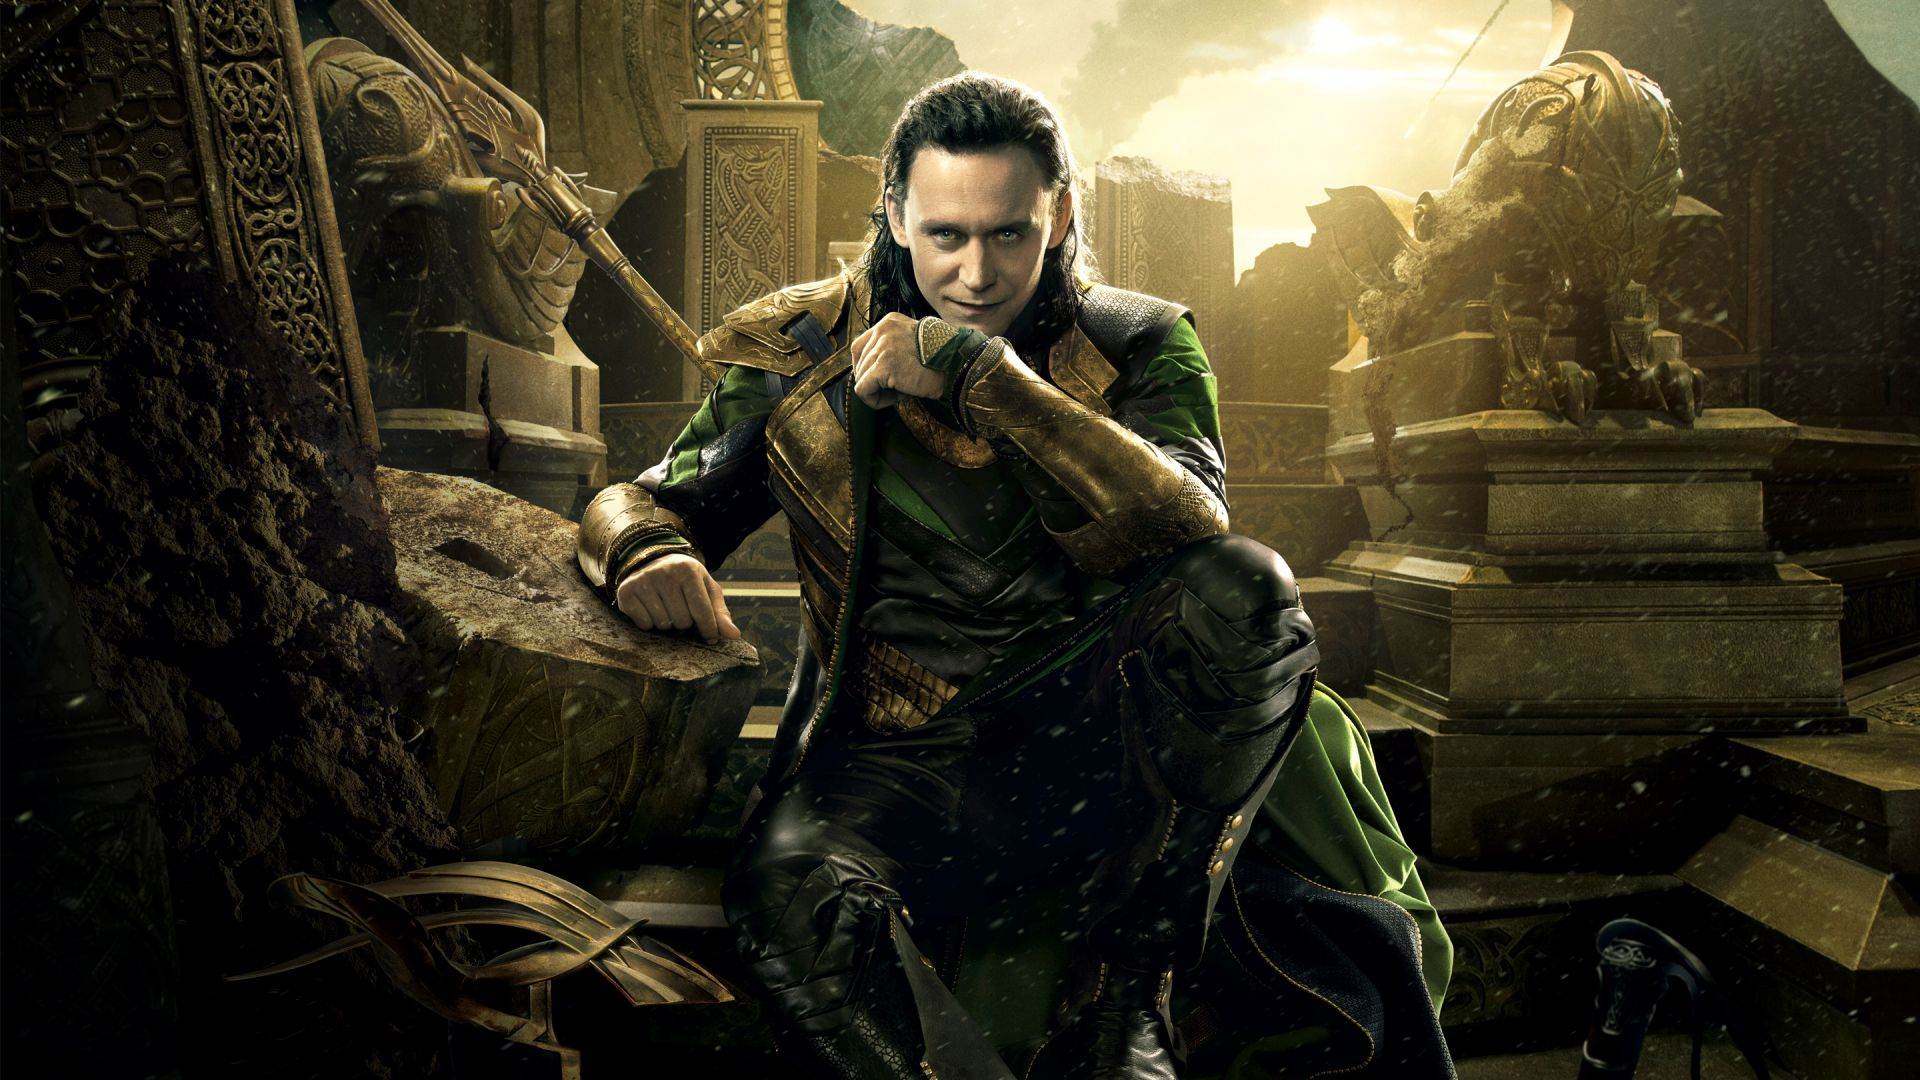 Thor: Ragnarok, Loki, Marvel, Tom Hiddleston, best movies (horizontal)